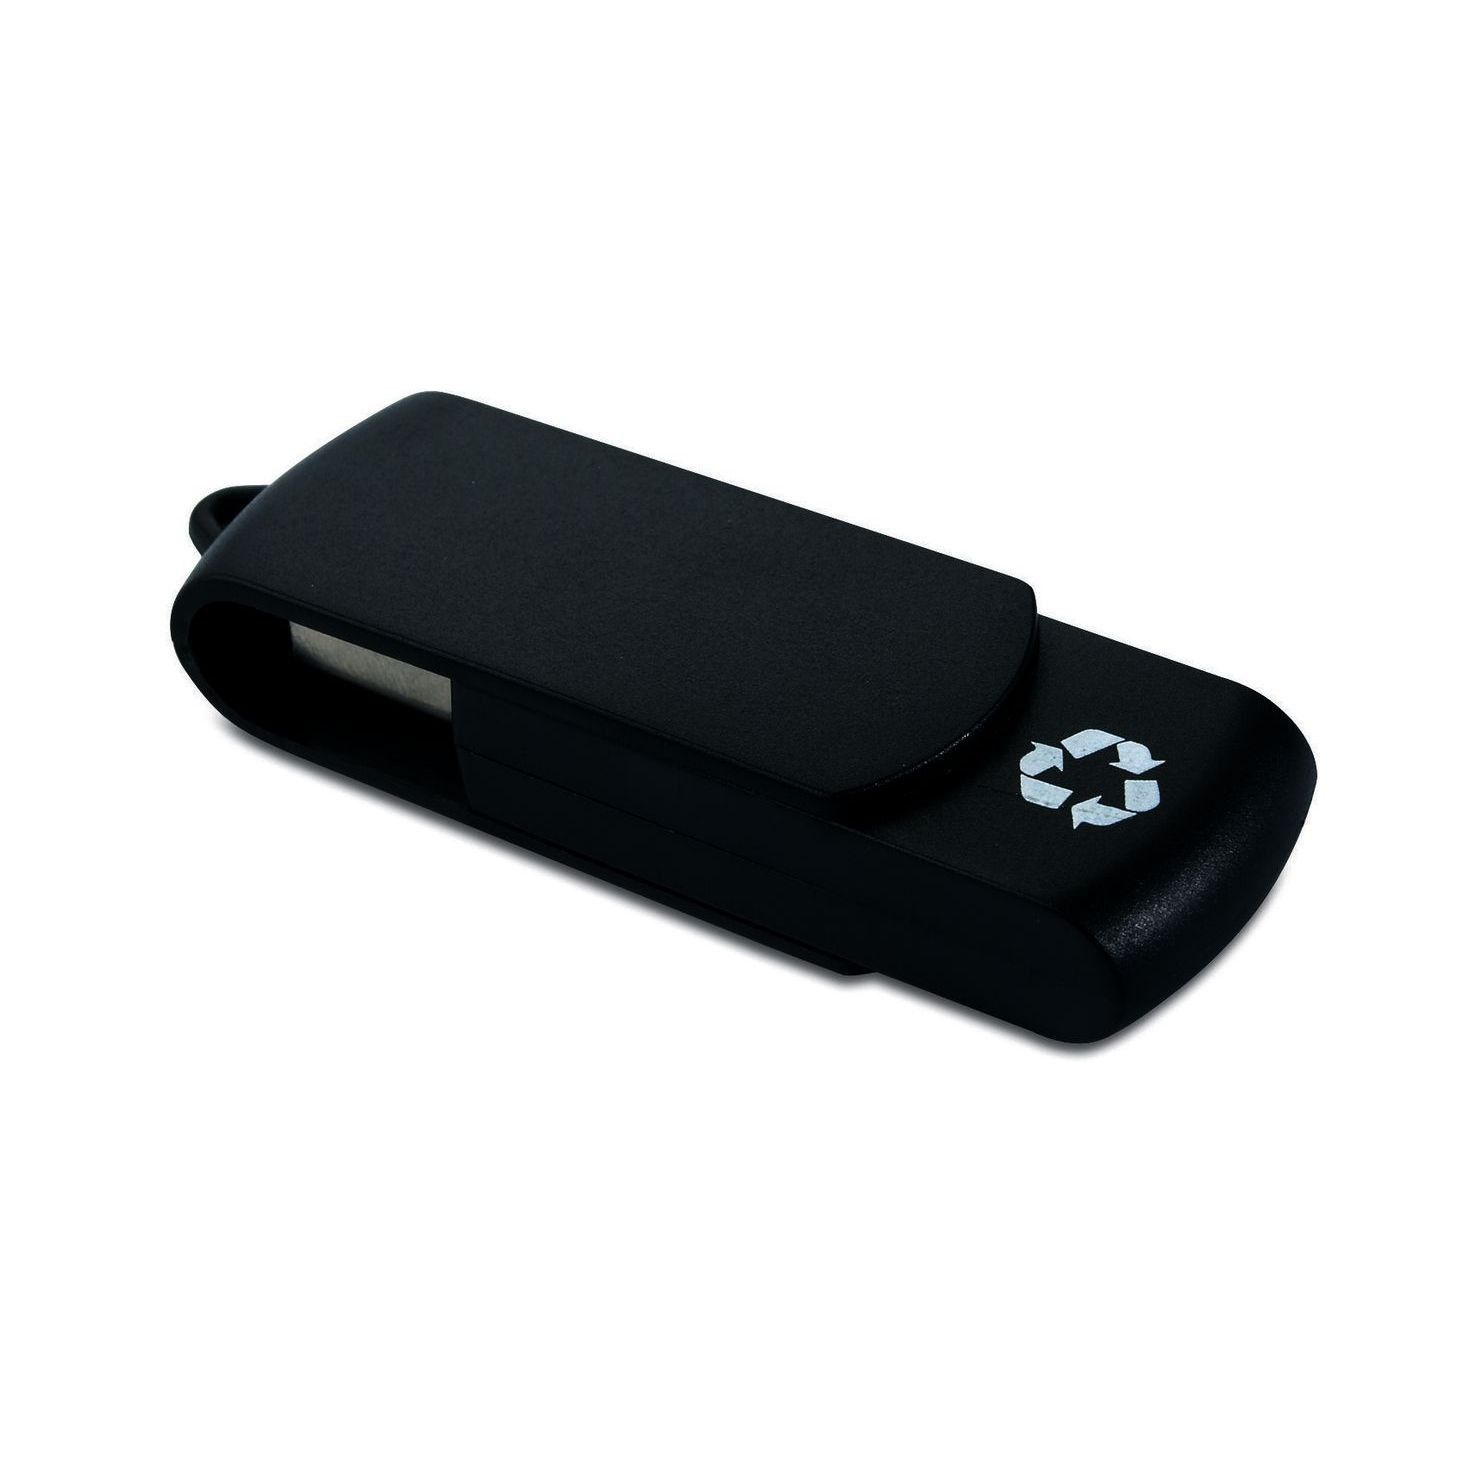 Zwarte USB stick gerecycled | 32GB